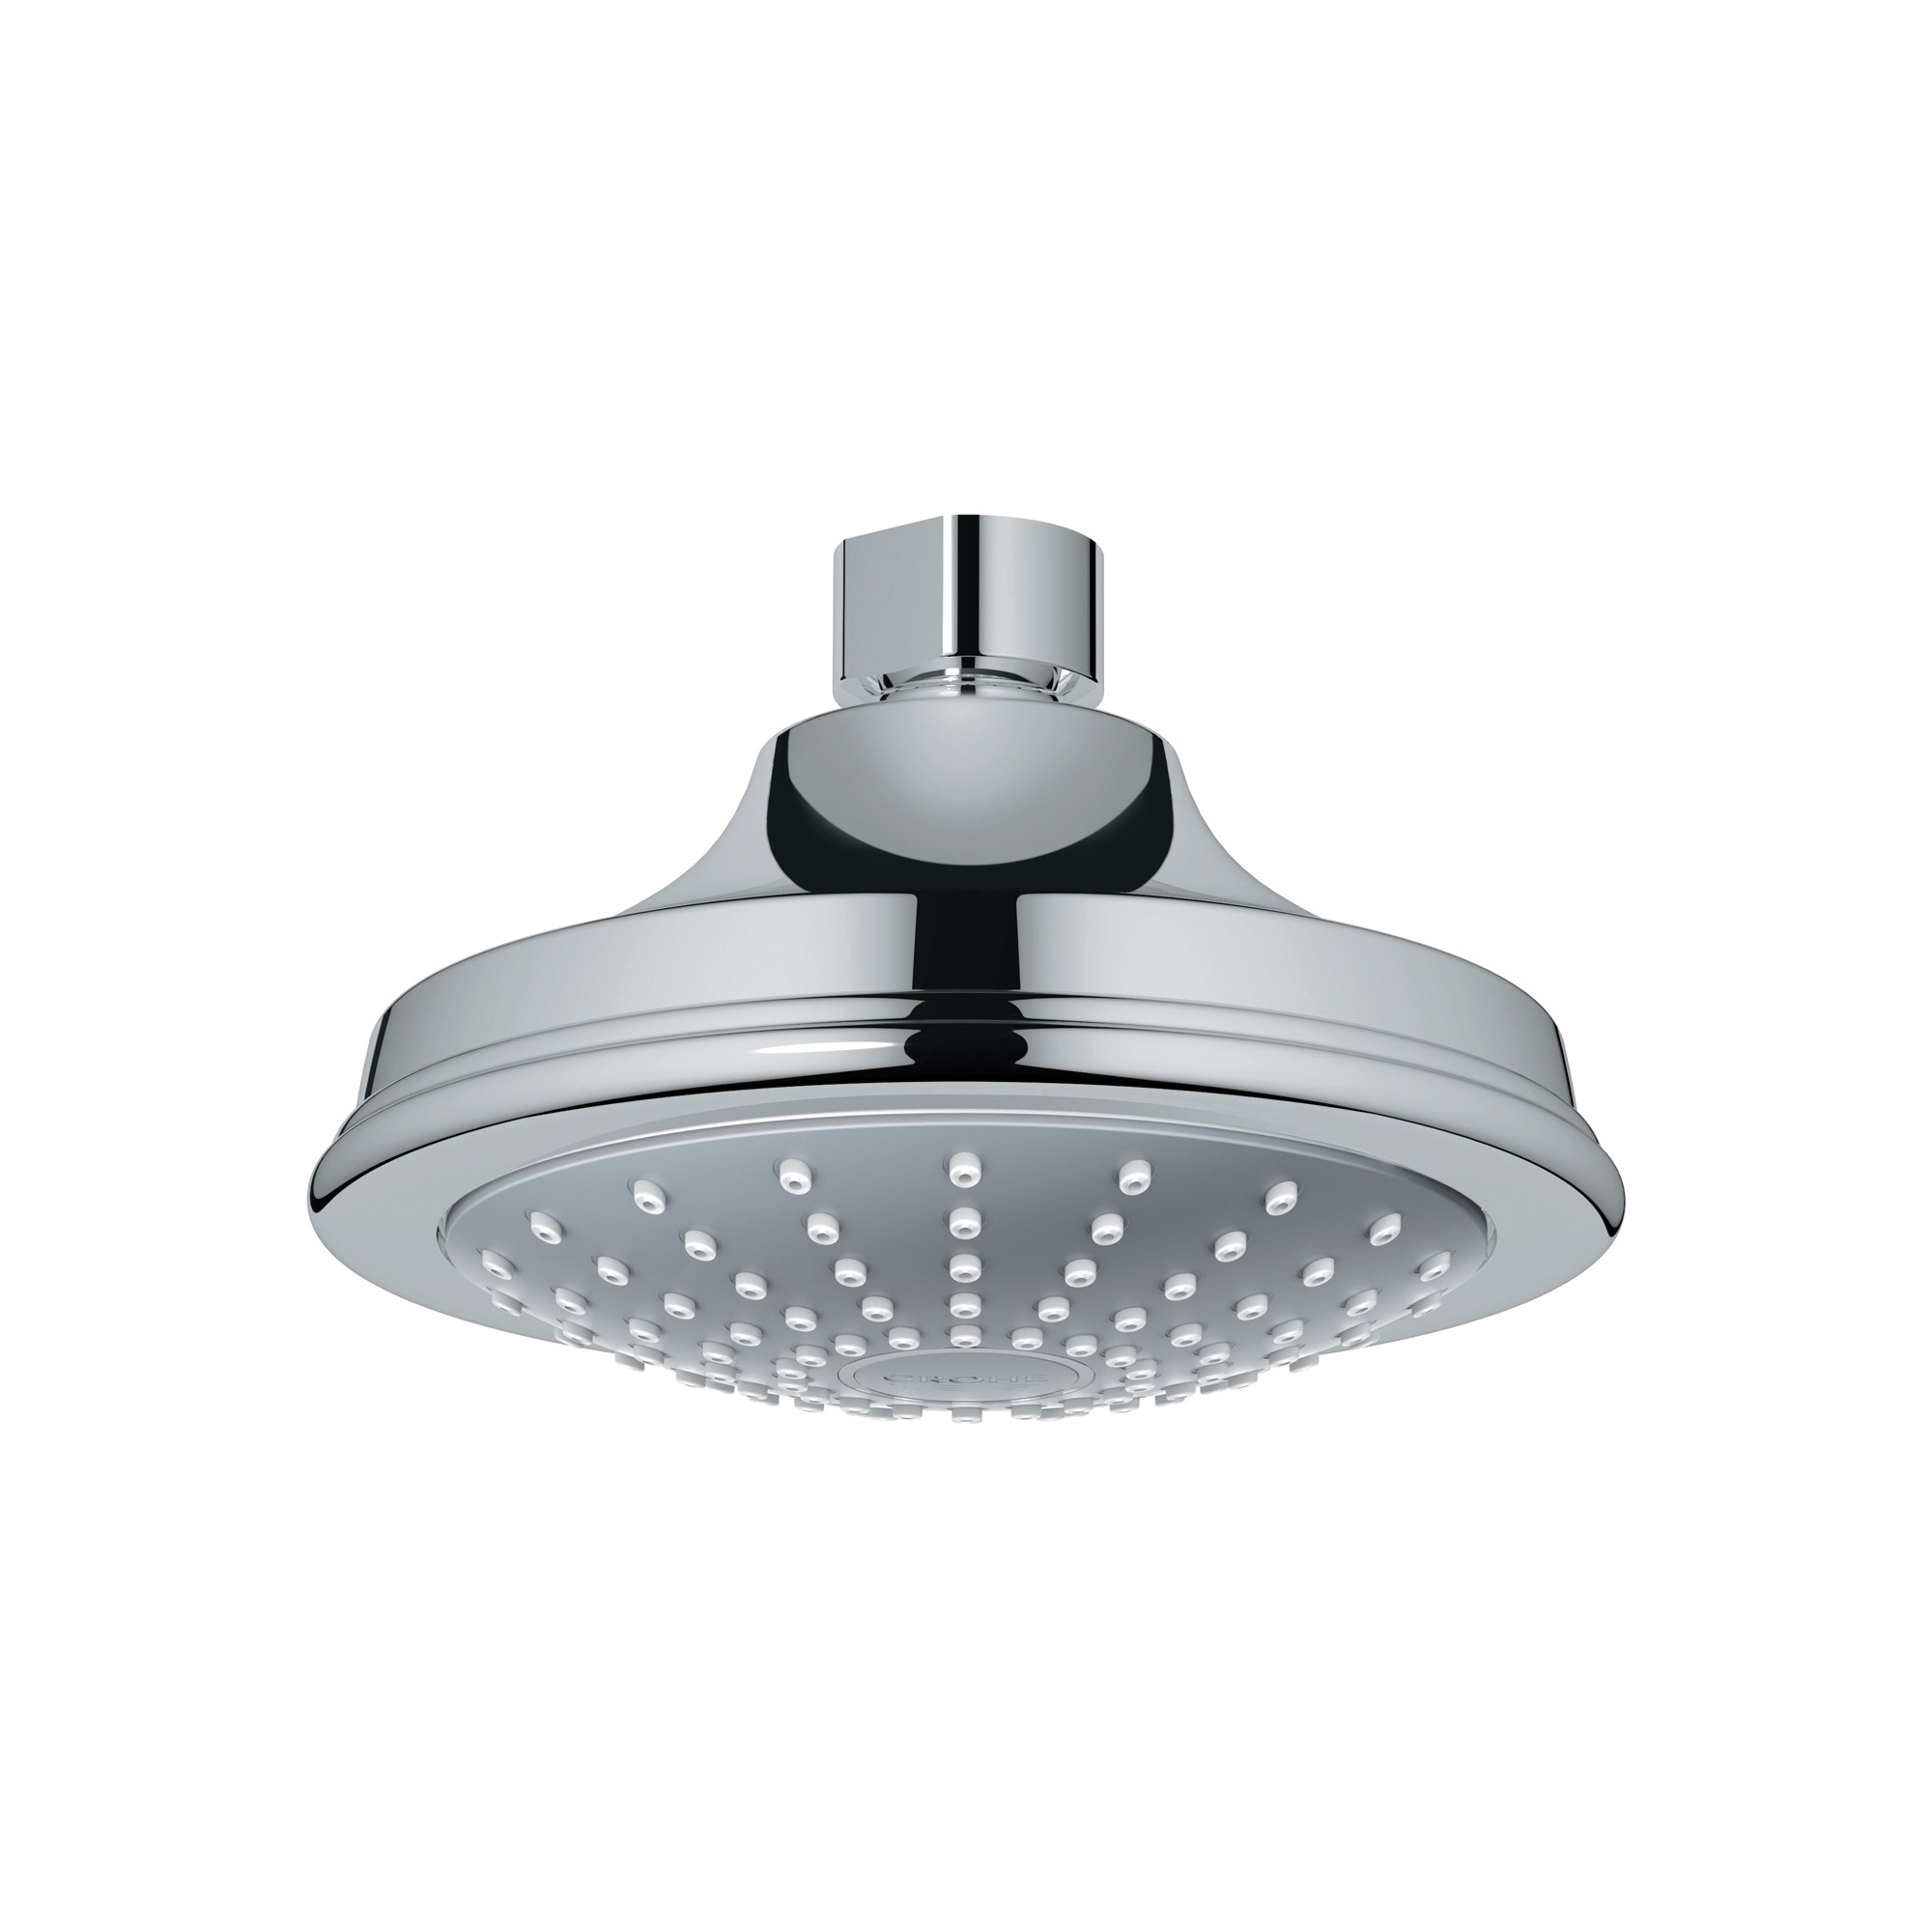 GROHE 28737000 Euphoria Rustic 130 Shower Head, 2.4 gpm, 1 Spray, Wall Mount, 5-1/16 in Dia Head, Import